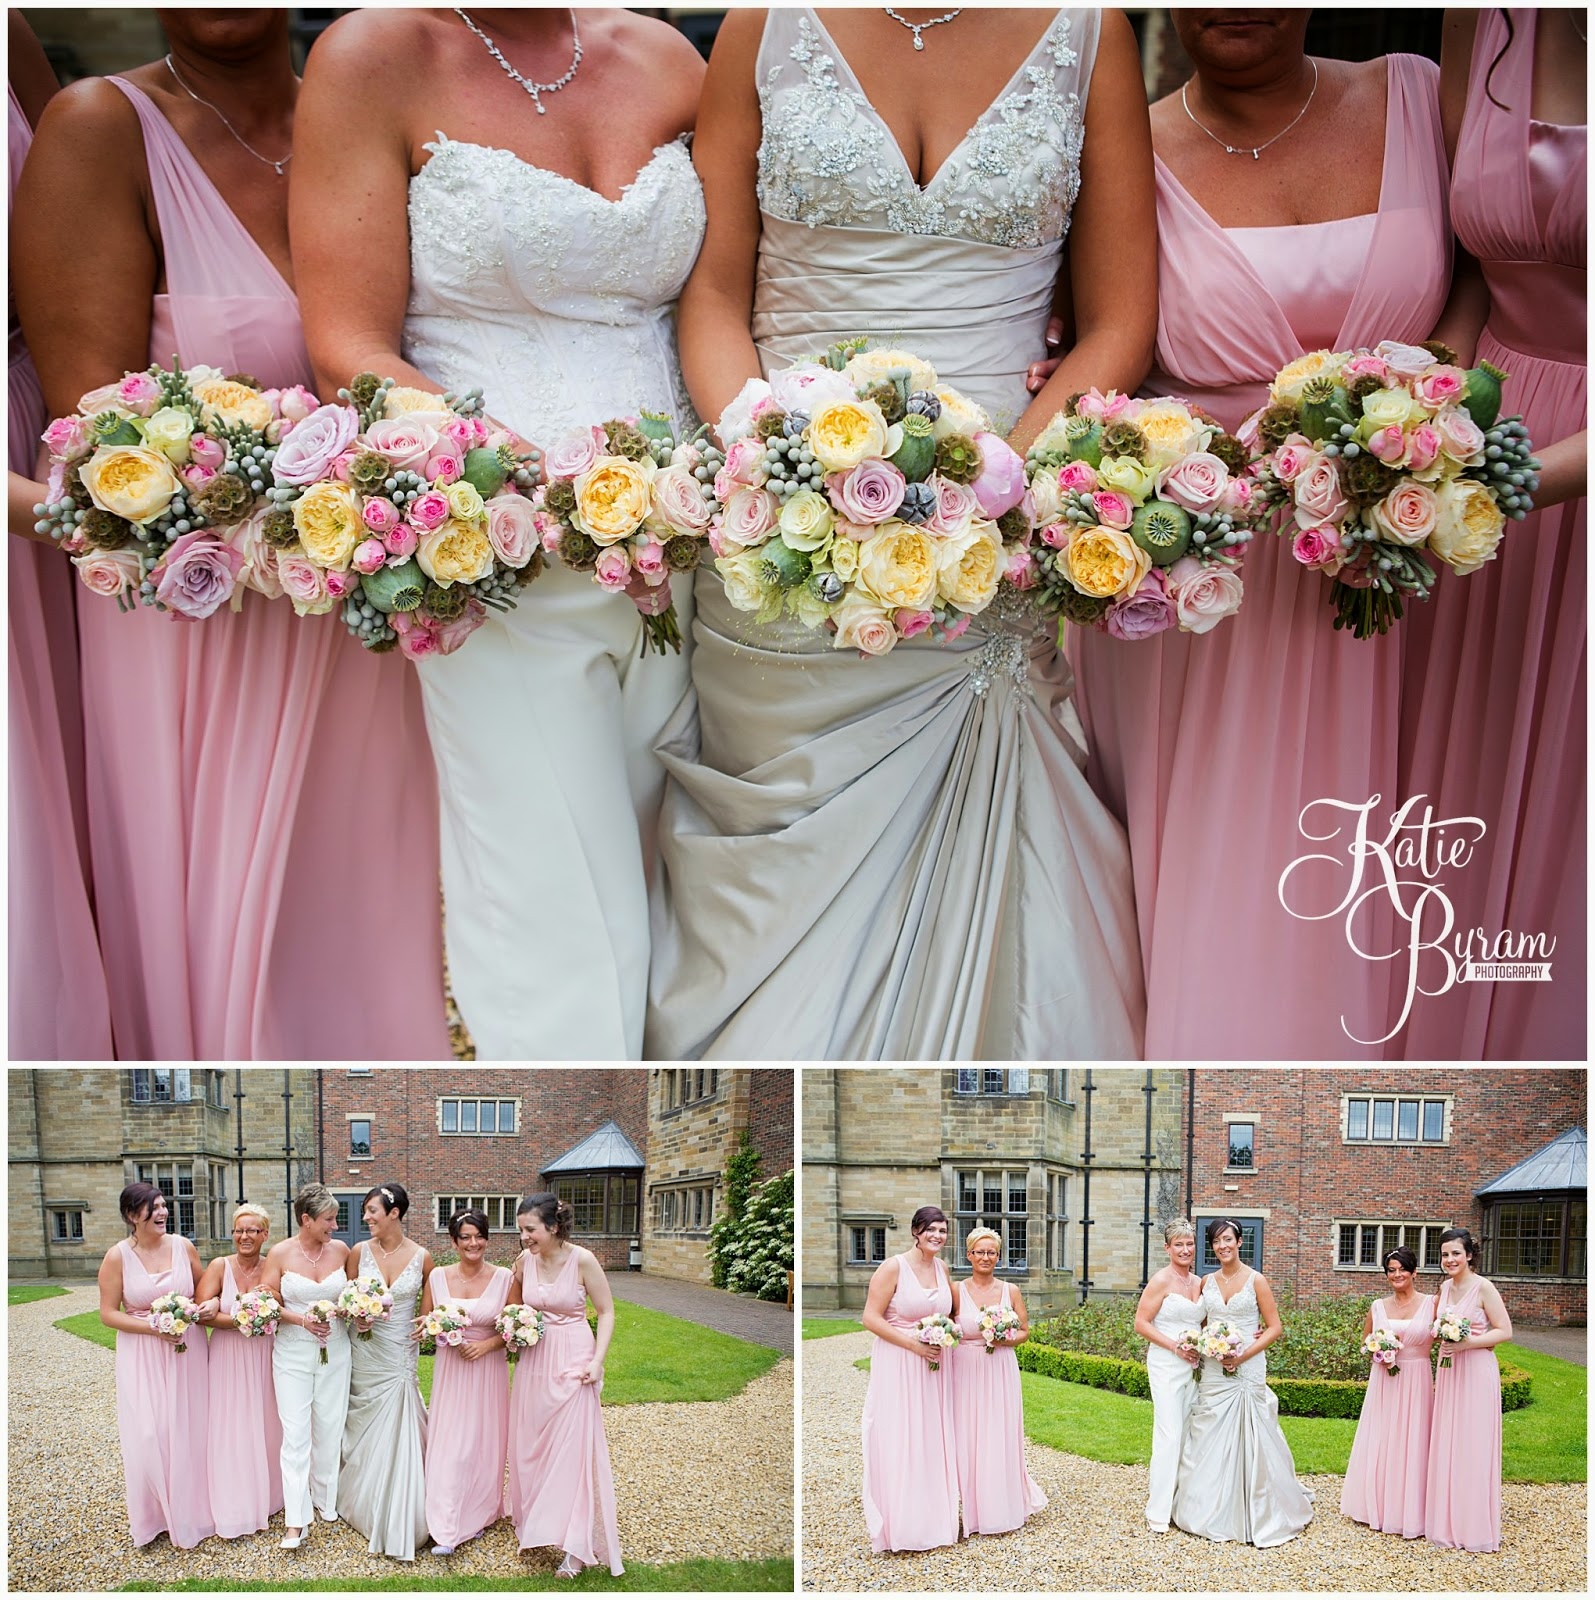 flowerlab, two bride wedding, lesbian wedding, lgbt wedding, gisborough hall wedding, north yorkshire wedding photographer, katie byram photographer, same-sex couples, bex bridal, elizabeth george bridal, north yorkshire wedding venues